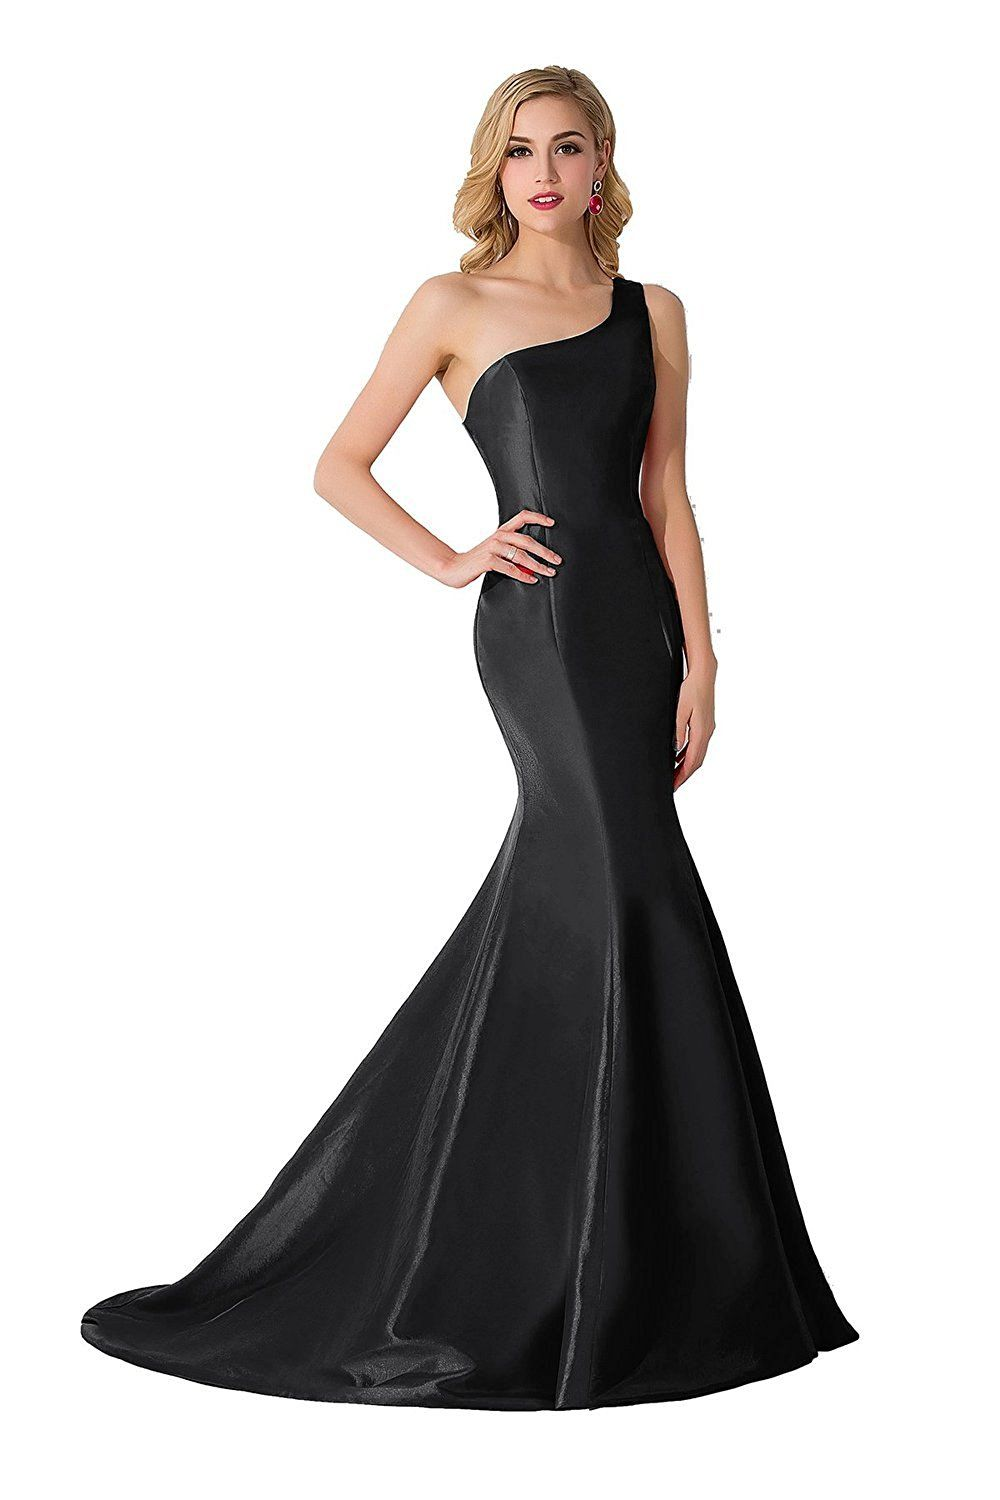 Babyonlinedress one shoulder long mermaid trumpet party gowns